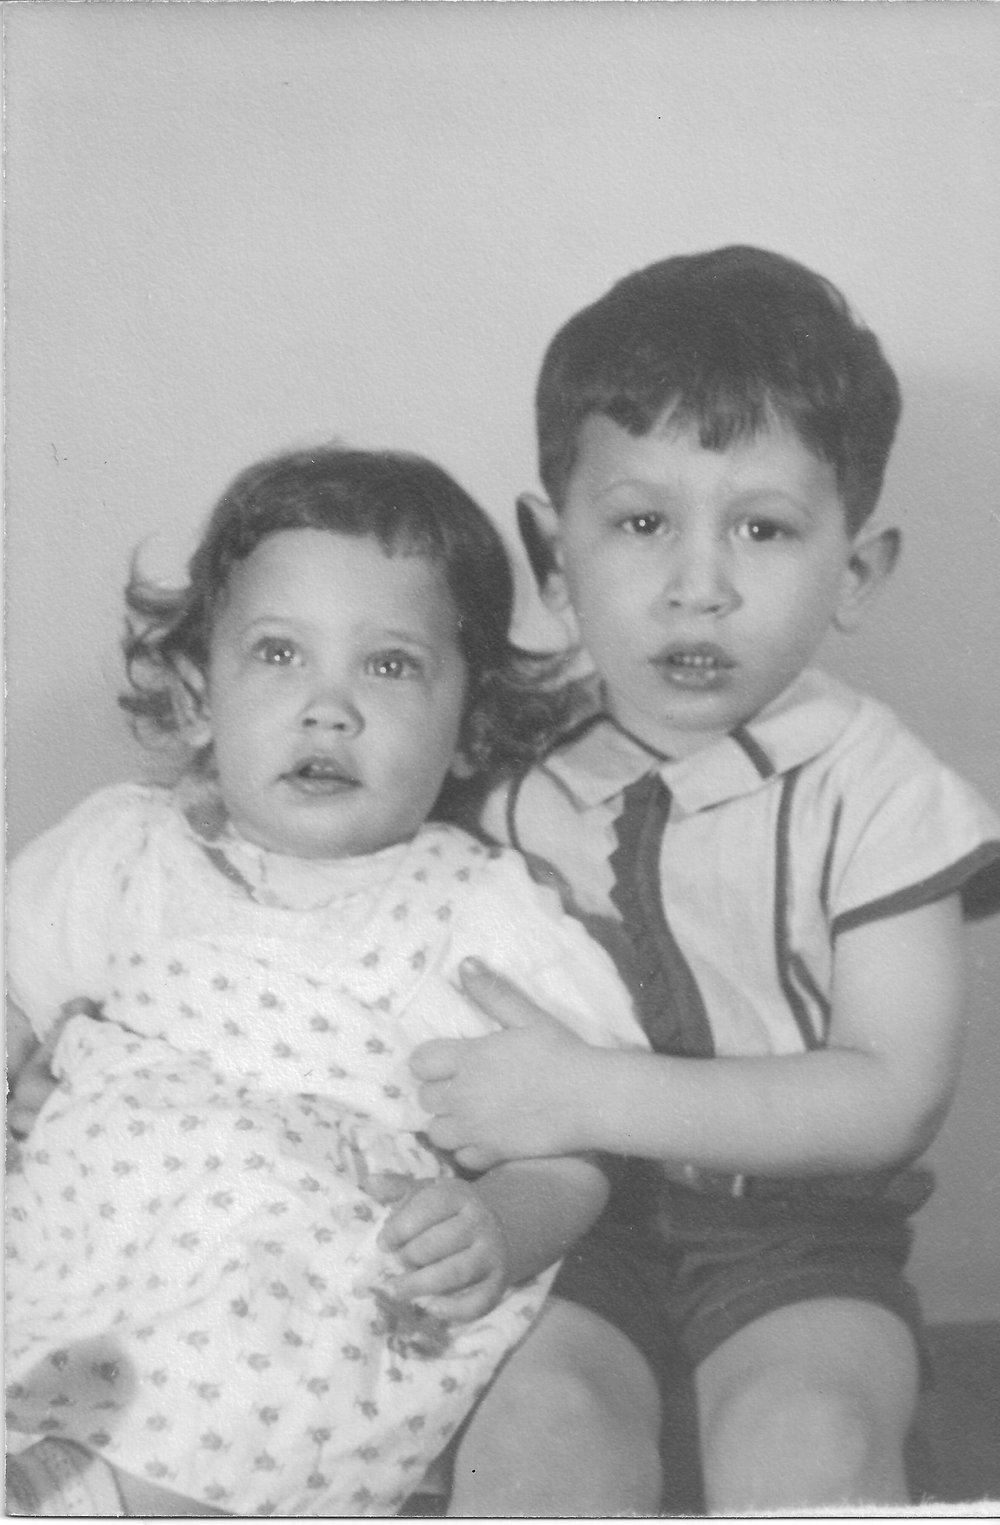 Baby sister Linda, with David ca. 1947